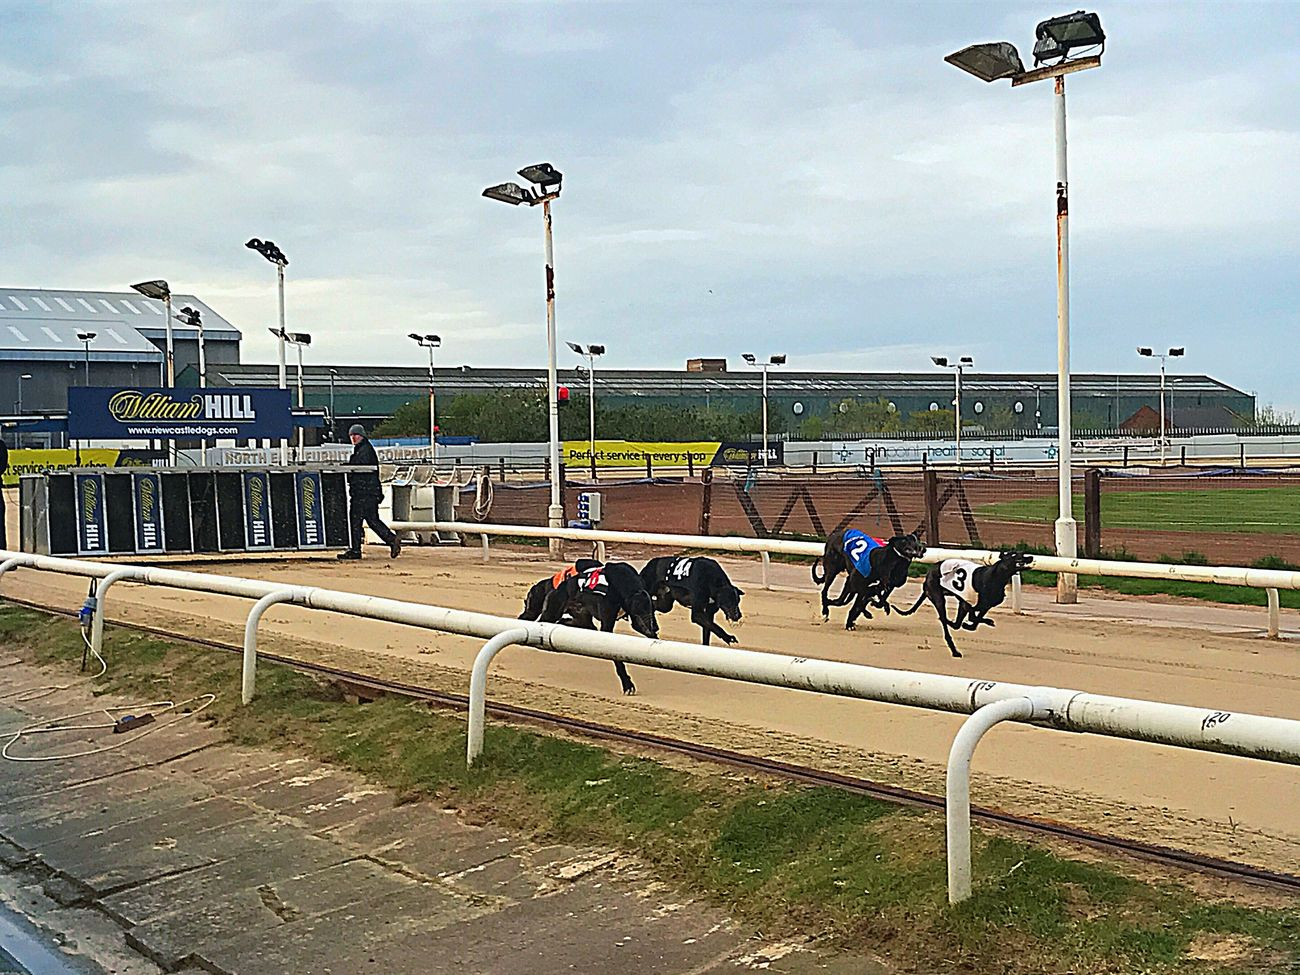 Dog Racing Greyhound Greyhound Racing Outdoors Sports Track Dogs Racetrack Cloud - Sky Day Outdoor Betting Race Running Competition Newcastle Upon Tyne